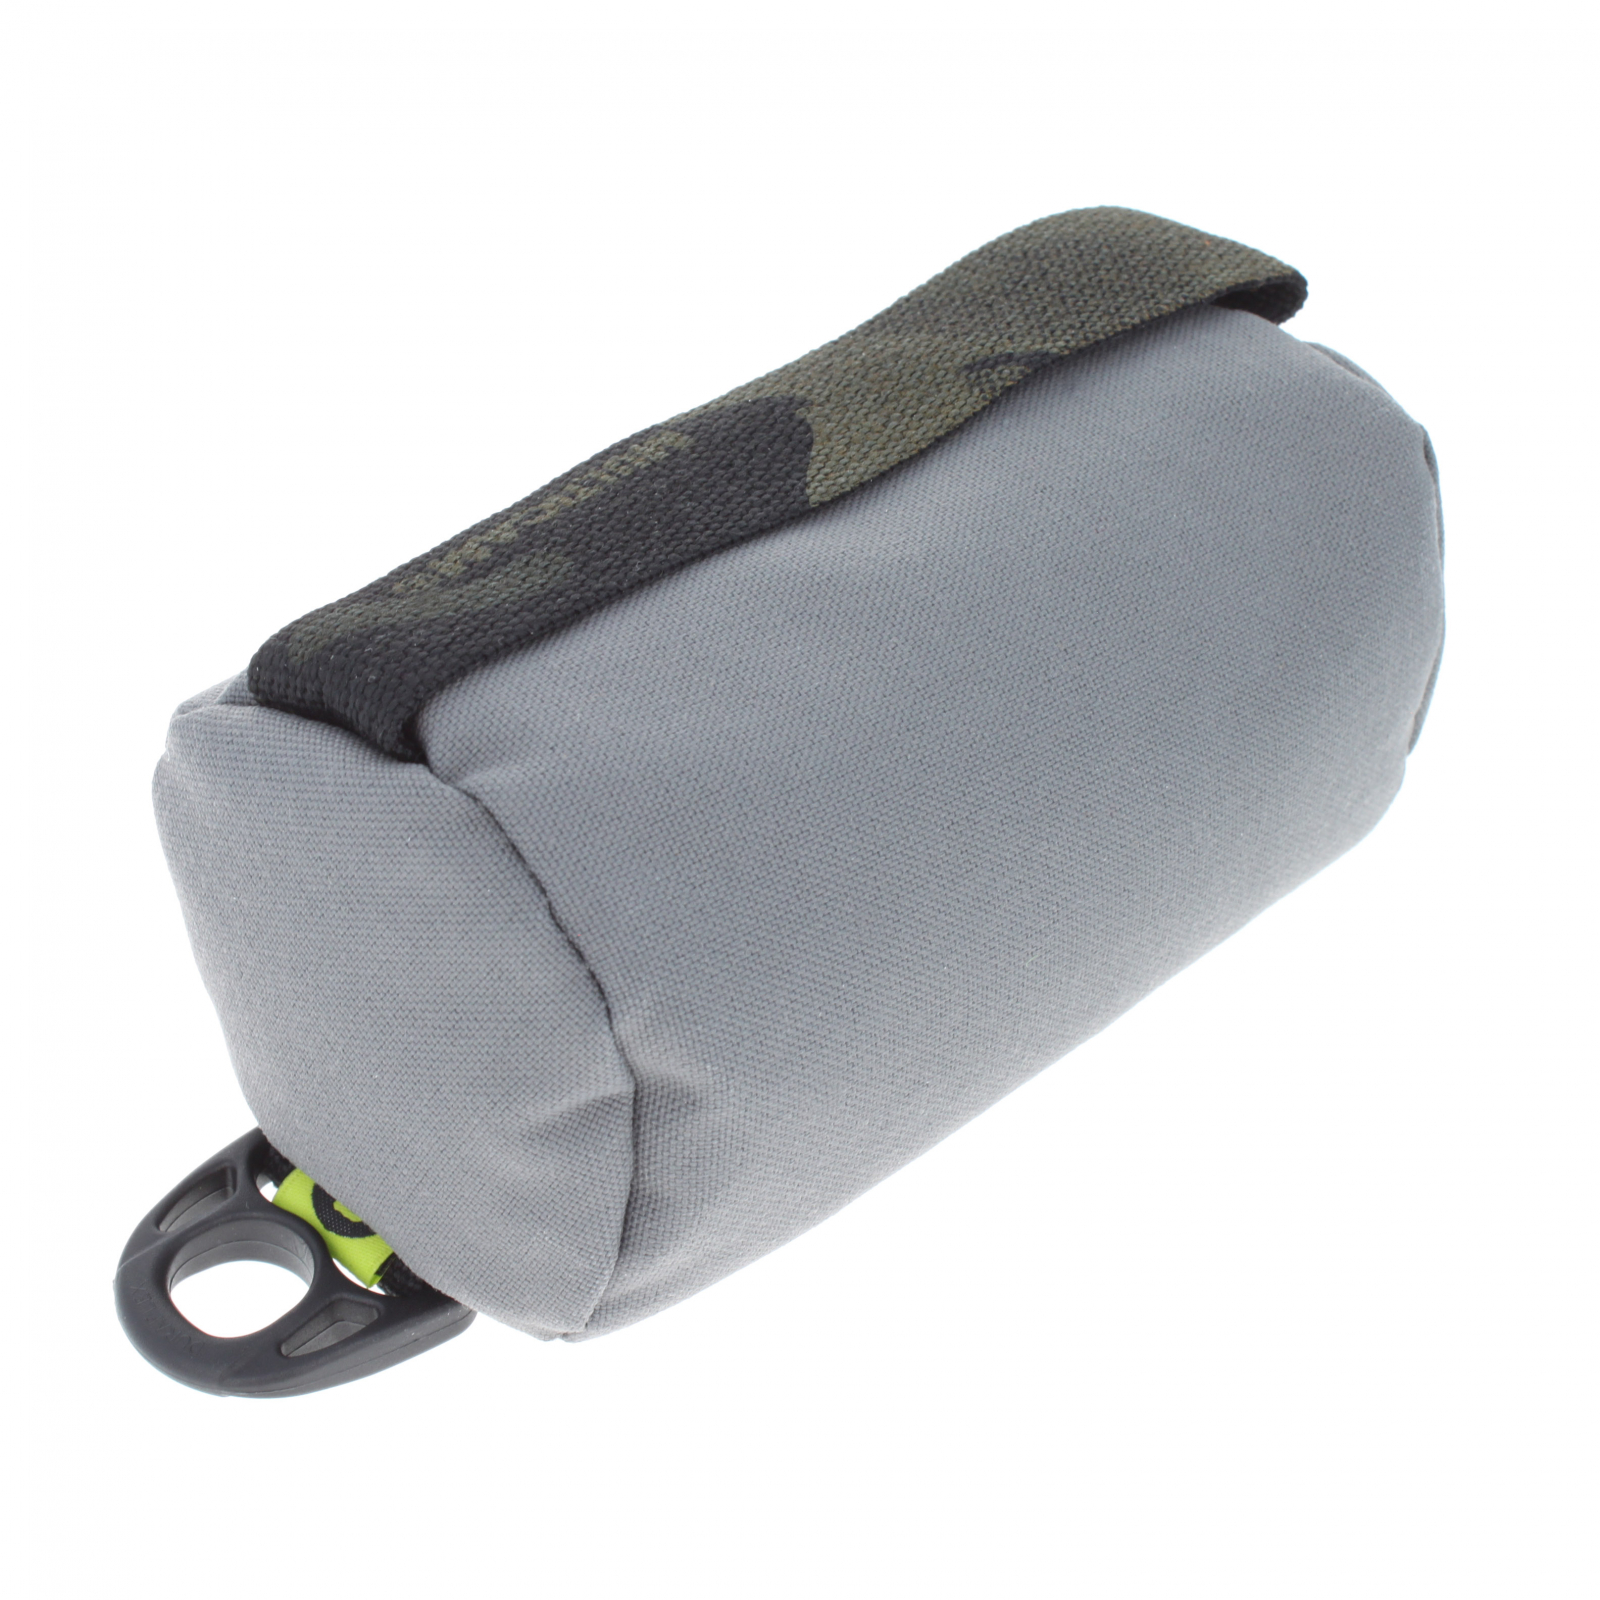 Booster Bag Shooting Bag Lightweight Carry Case Wolf